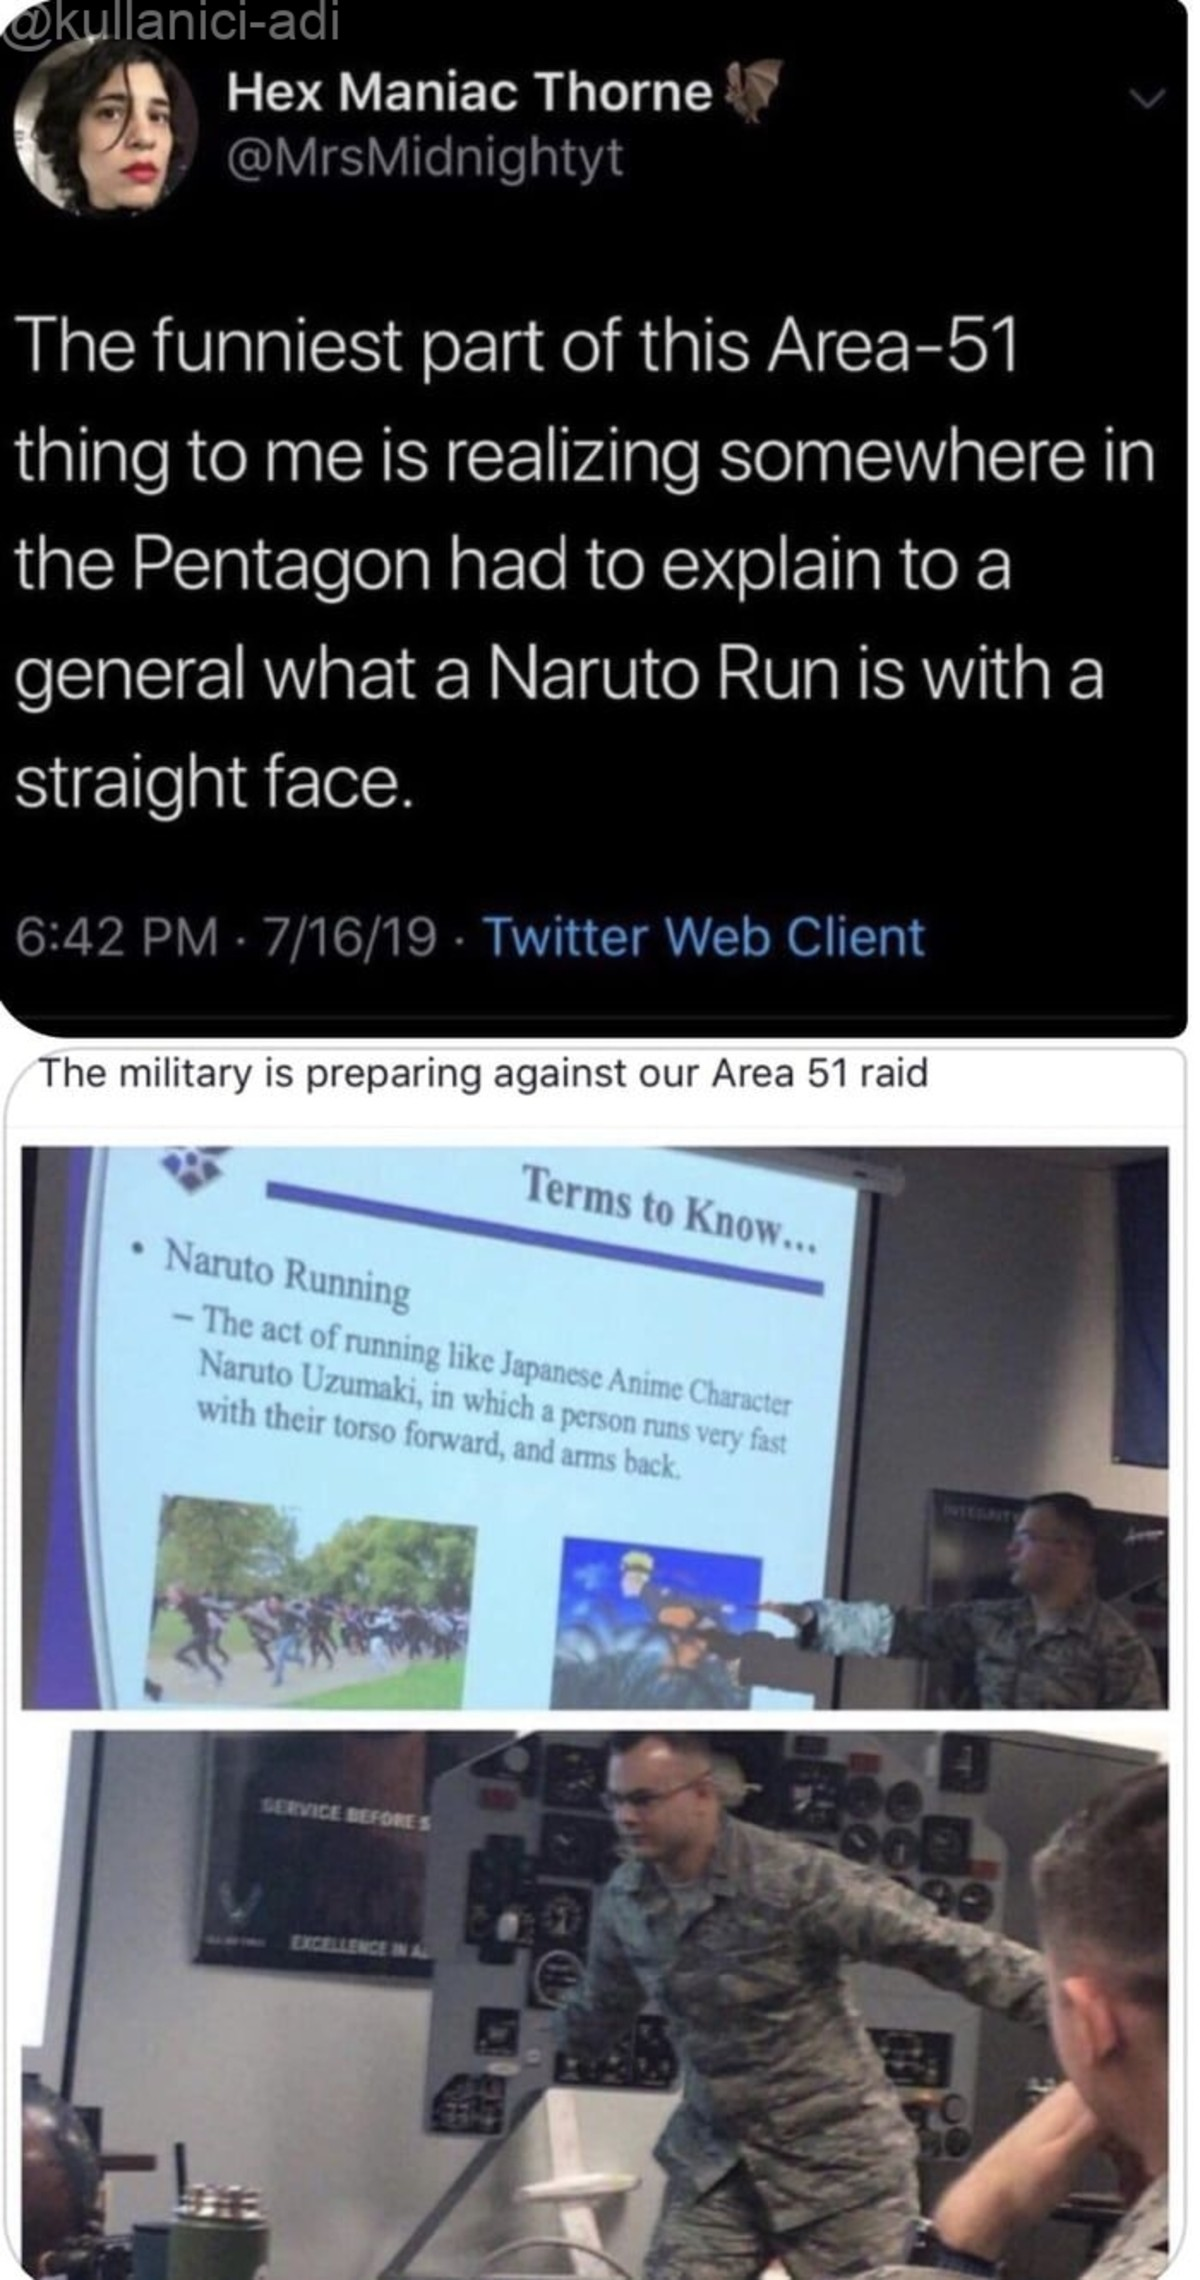 """Best timeline 2:electric boogaloo. .. General: """"So if keeping hands in that position makes them run faster, why our troops are not doing it?"""""""